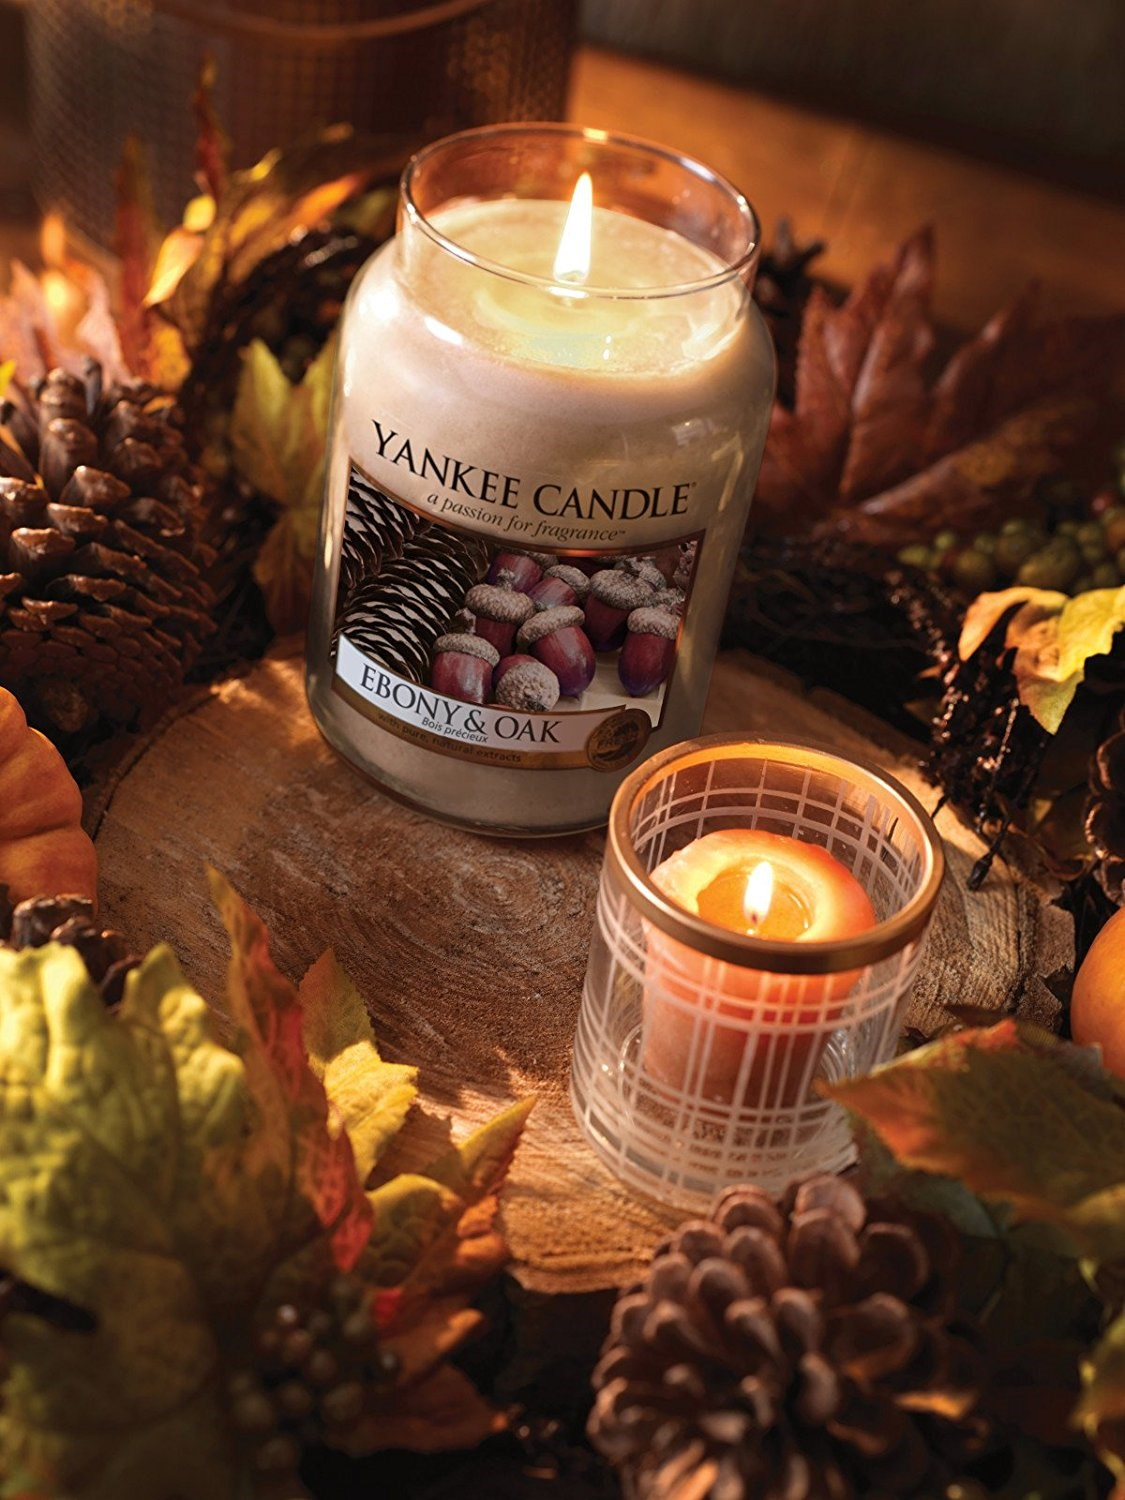 Yankee candle ebony oak giara piccola yankee candle for Candele arredo